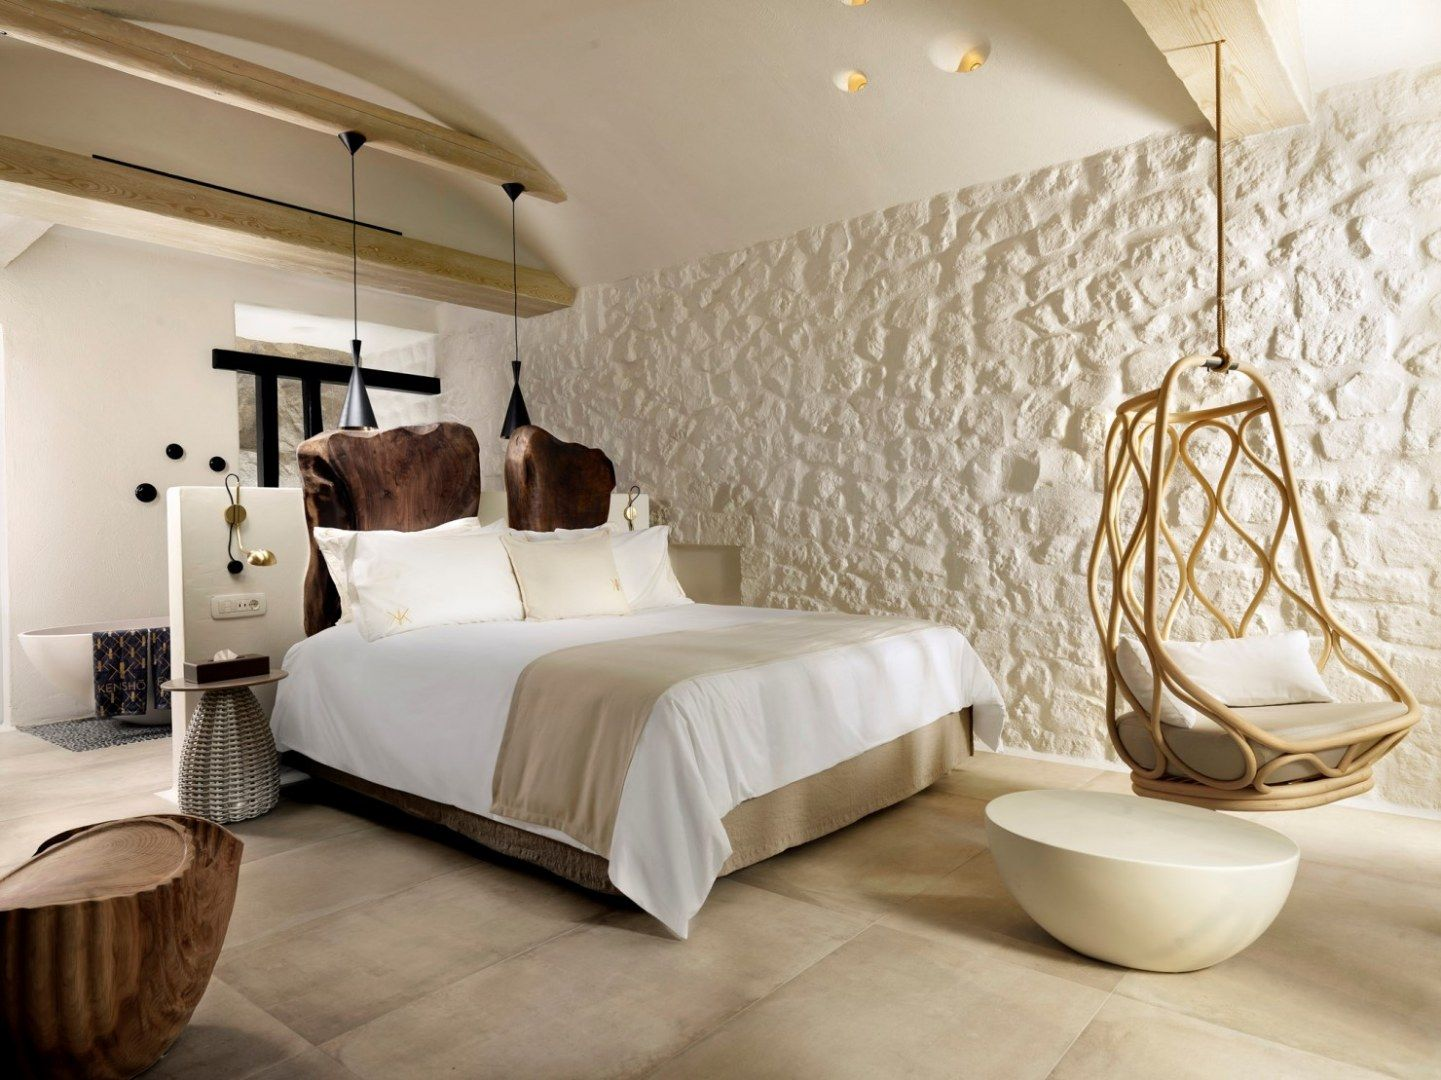 Cocoon boutique hotel inspiration interior for Hotel interior design